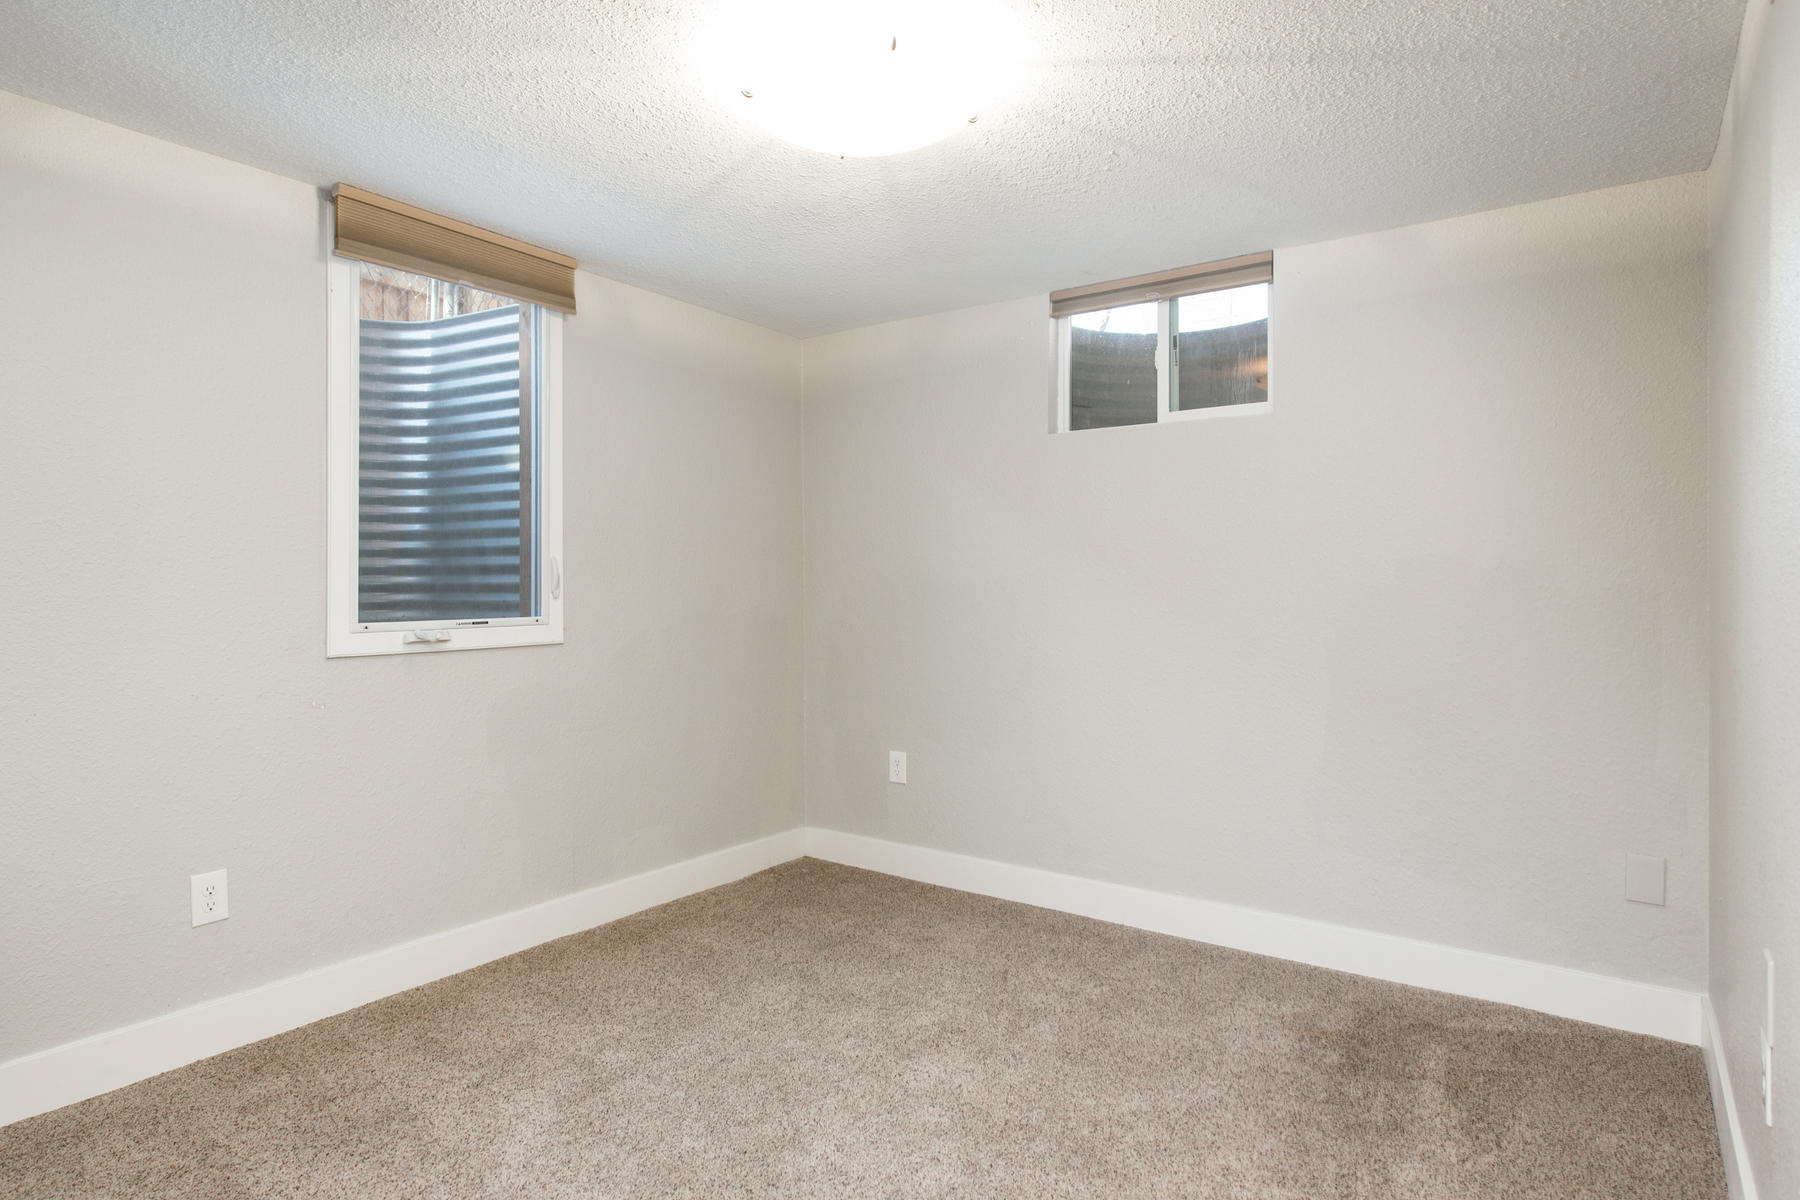 Additional photo for property listing at Updated Gem With A Full Finished Basement 5005 E Atlantic Pl Denver, Colorado 80222 United States